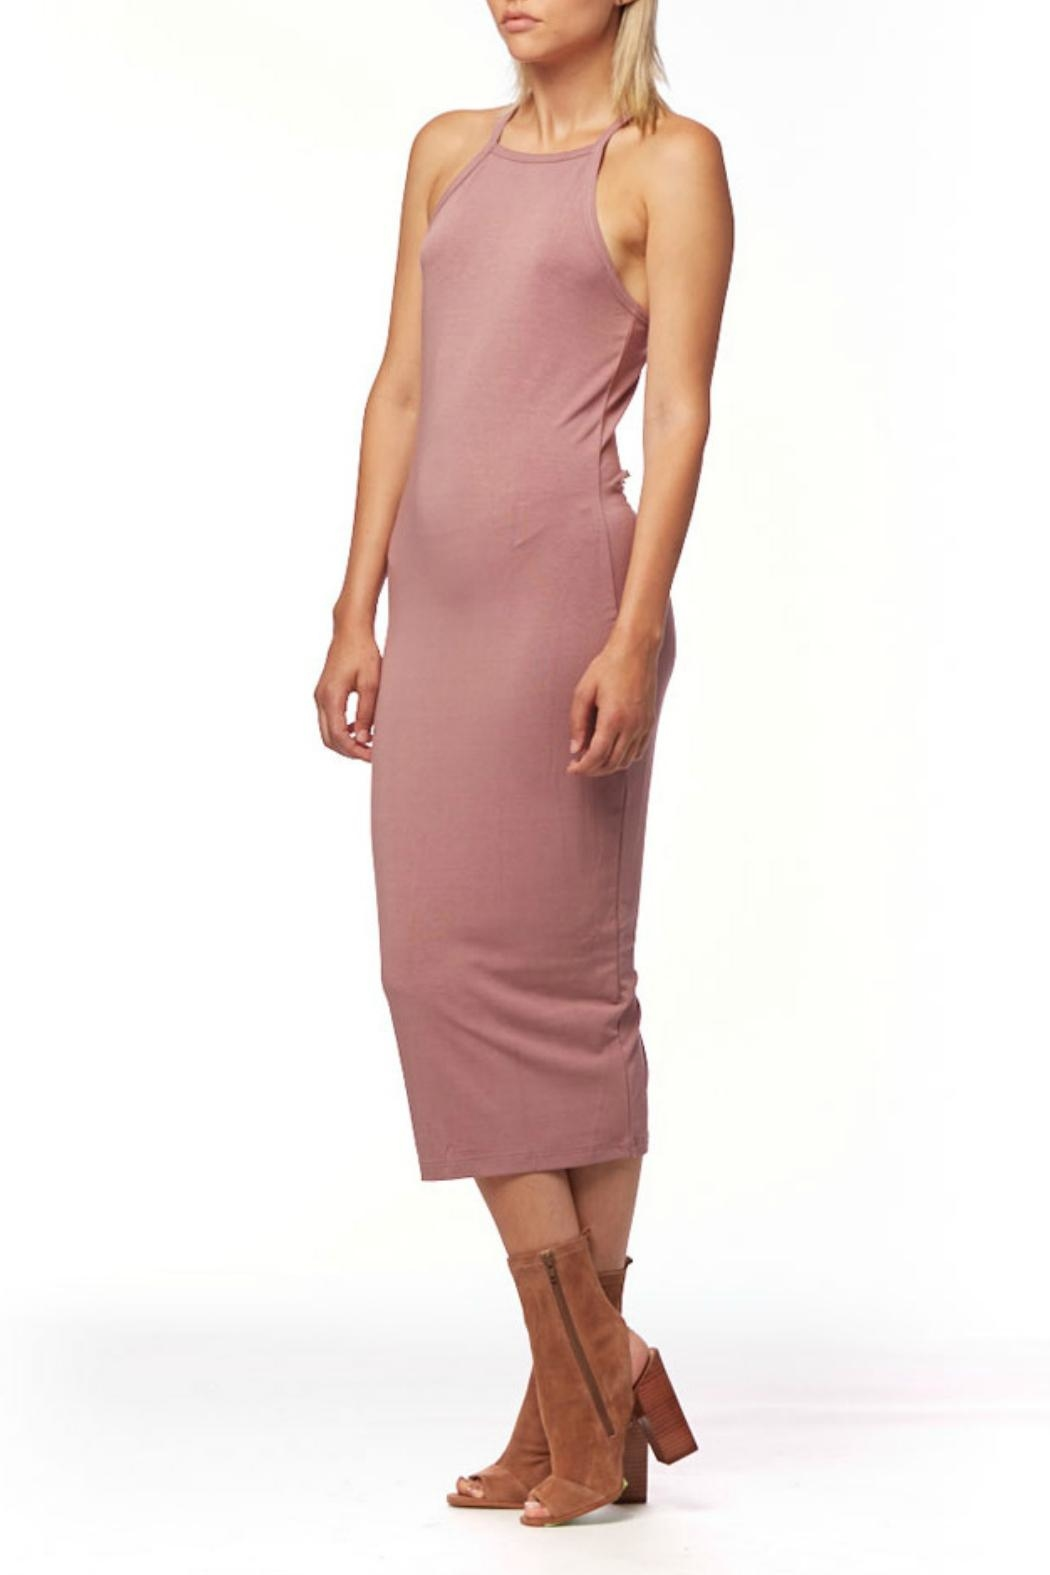 L Fashion Overload Tank Top Midi Dress - Back Cropped Image